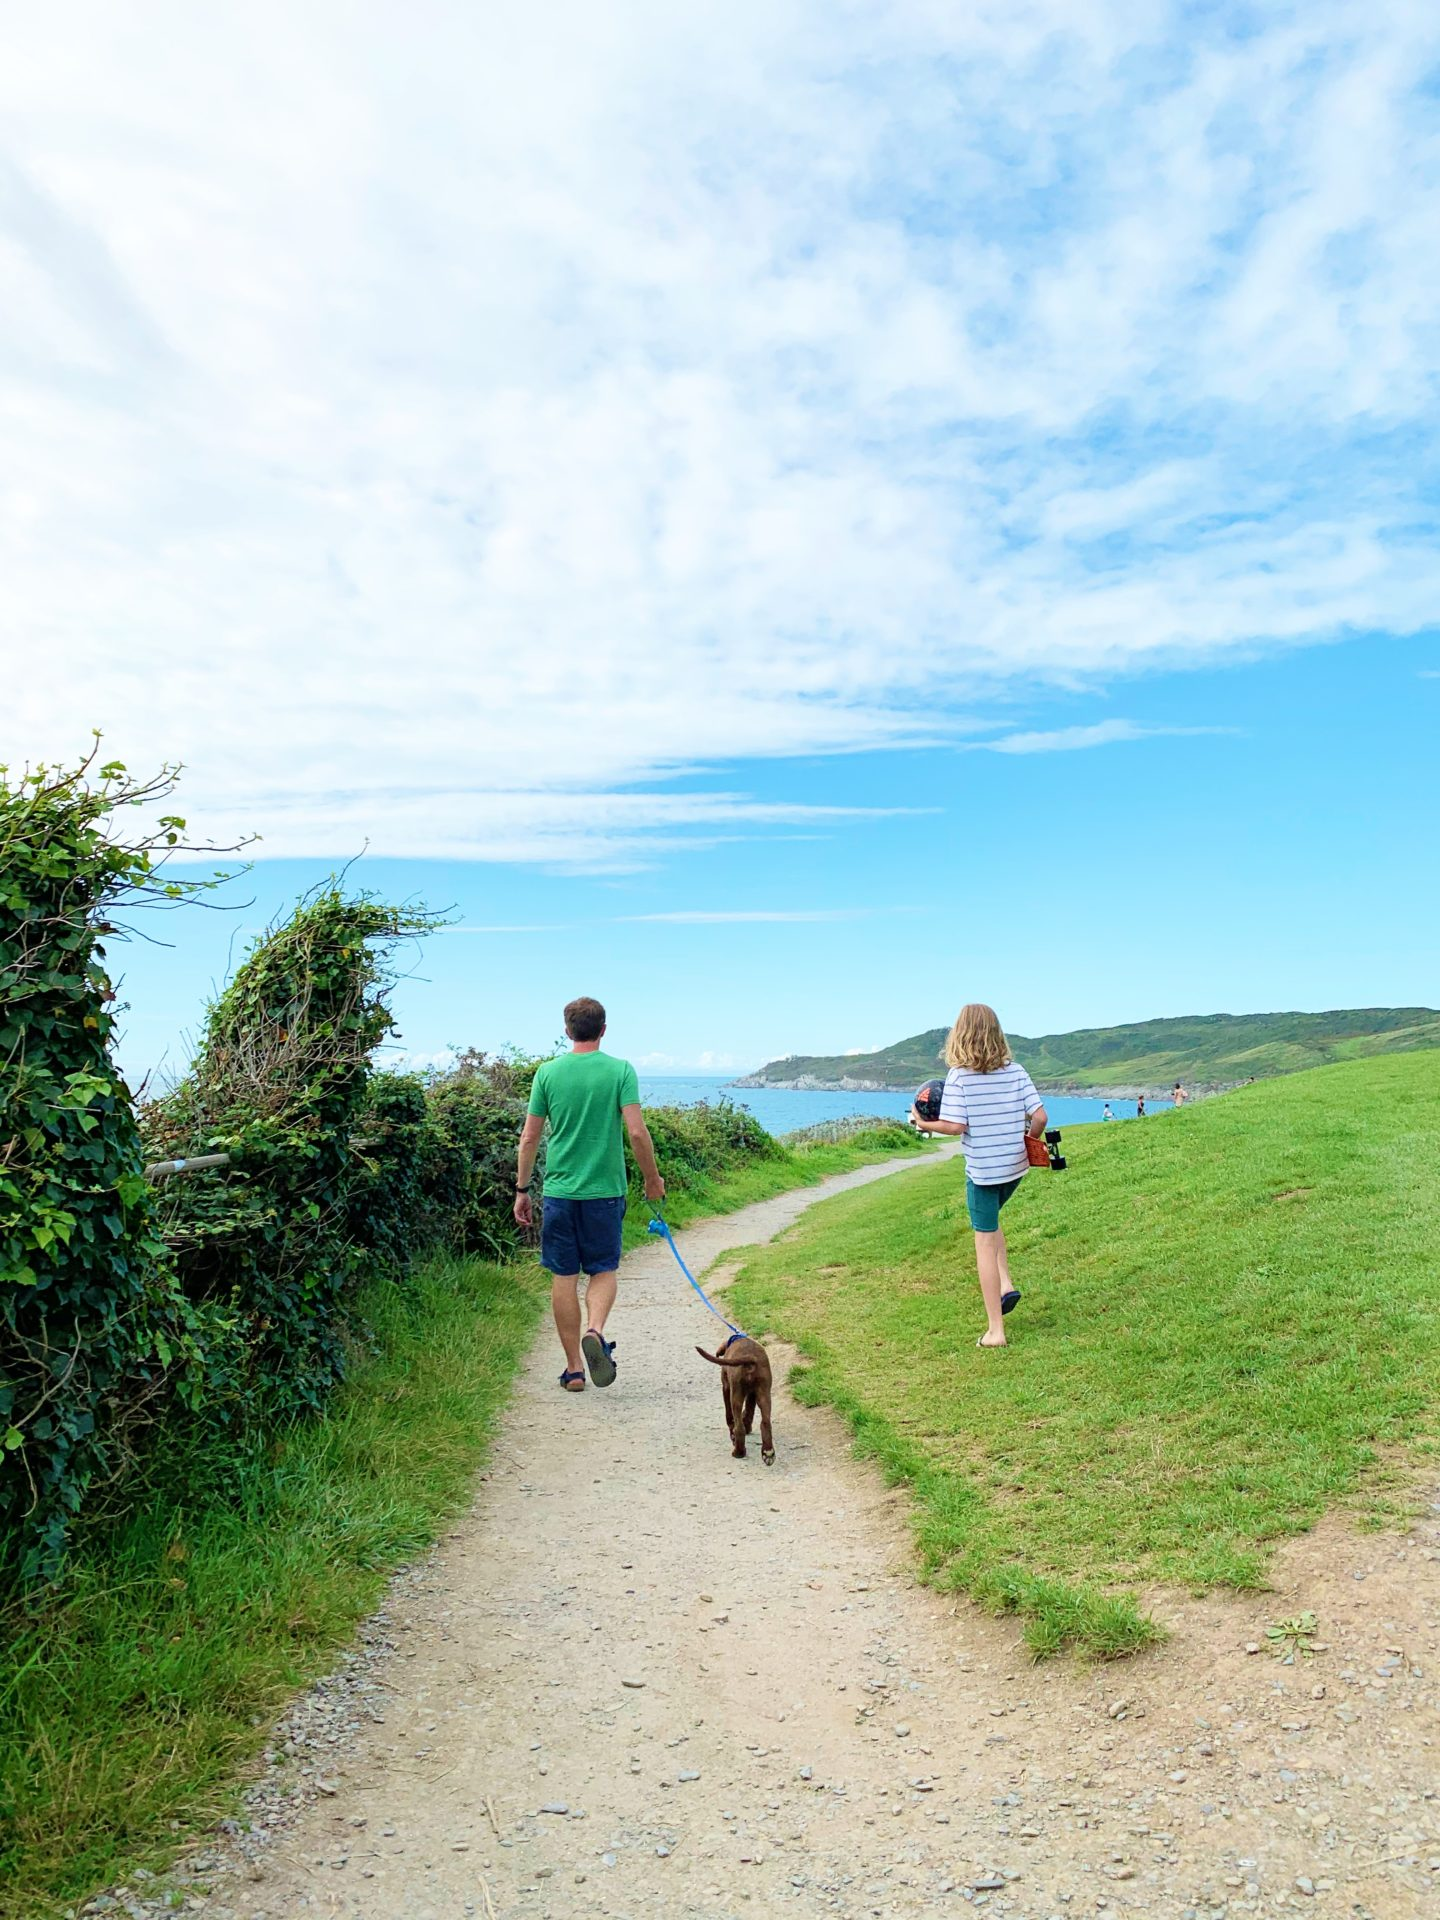 Our summer holiday in Ilfracombe